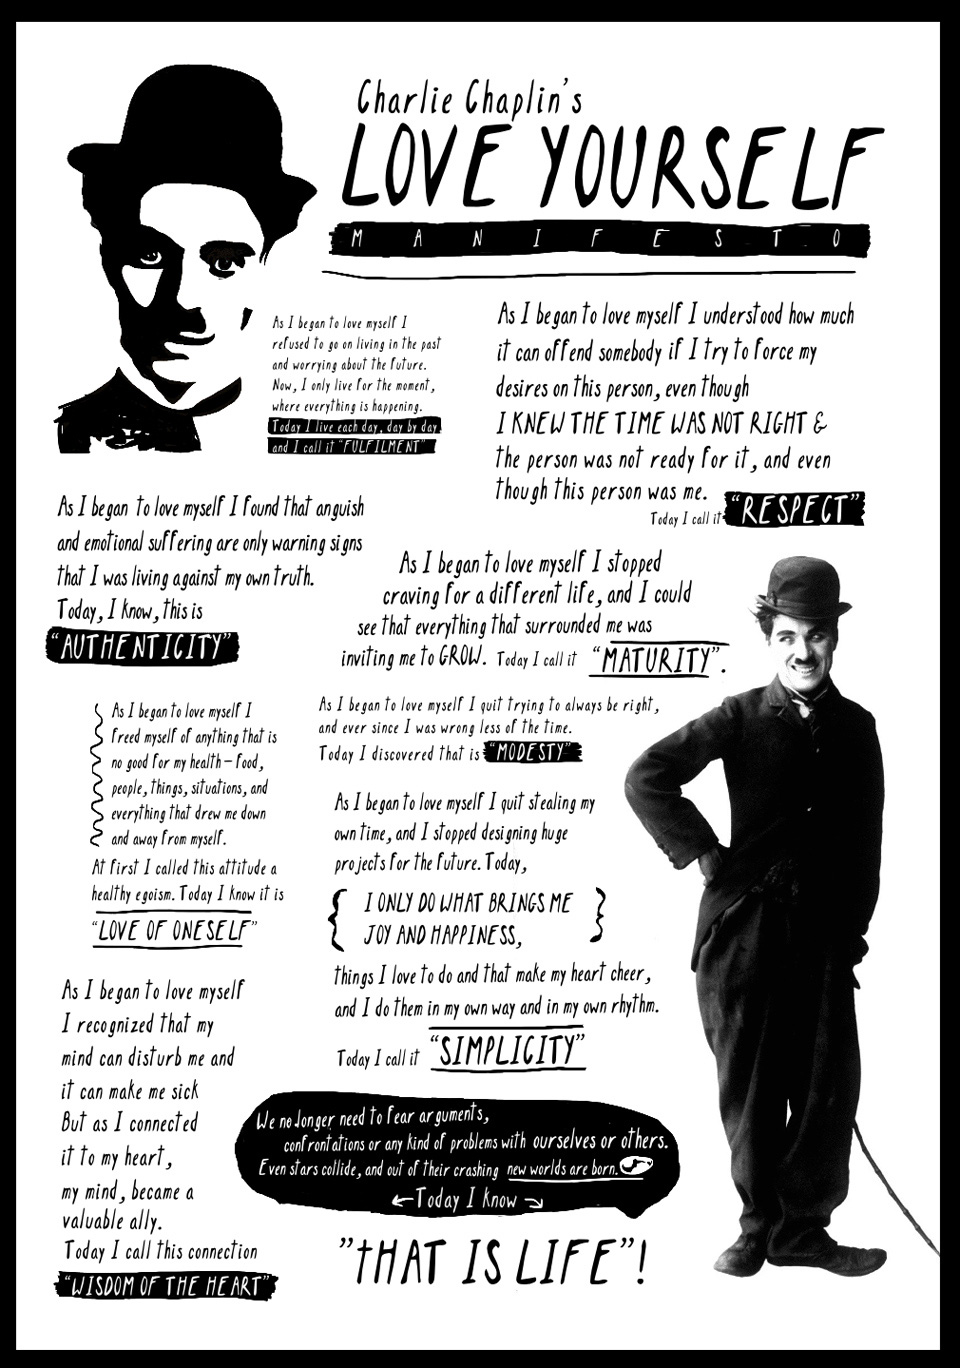 Musical Birthday Quotes Wallpapers Charlie Chaplin As I Began To Love Myself Life In The